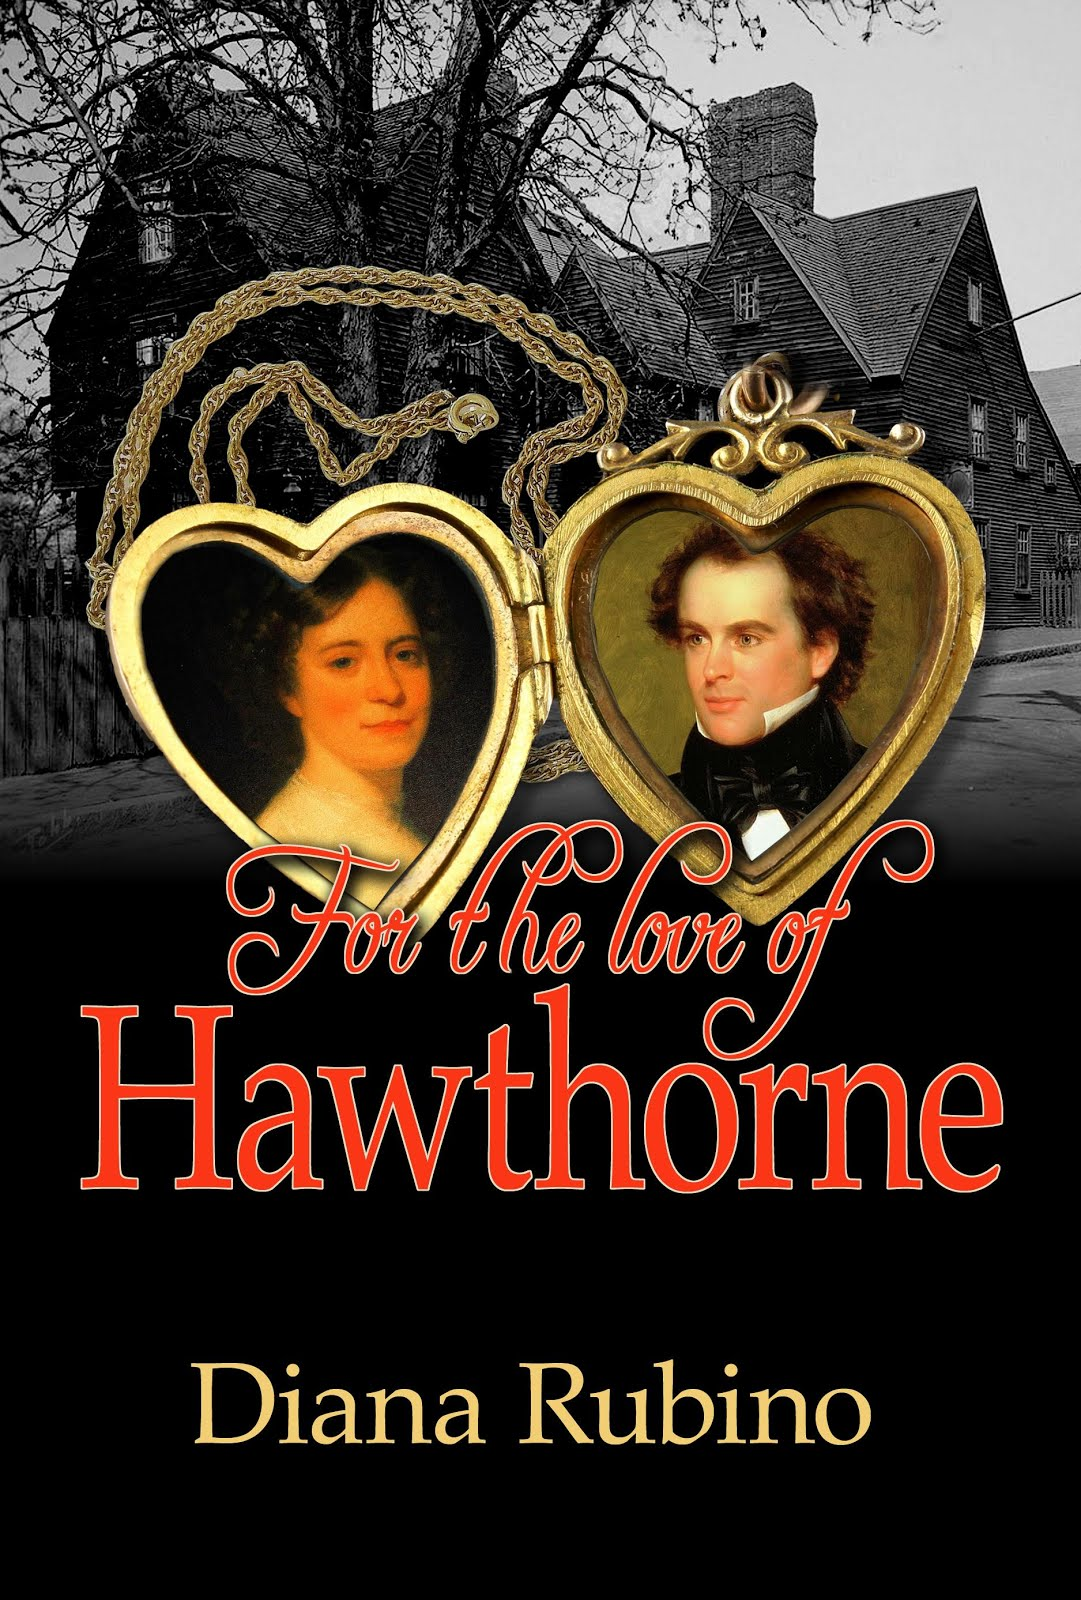 FOR THE LOVE OF HAWTHORNE